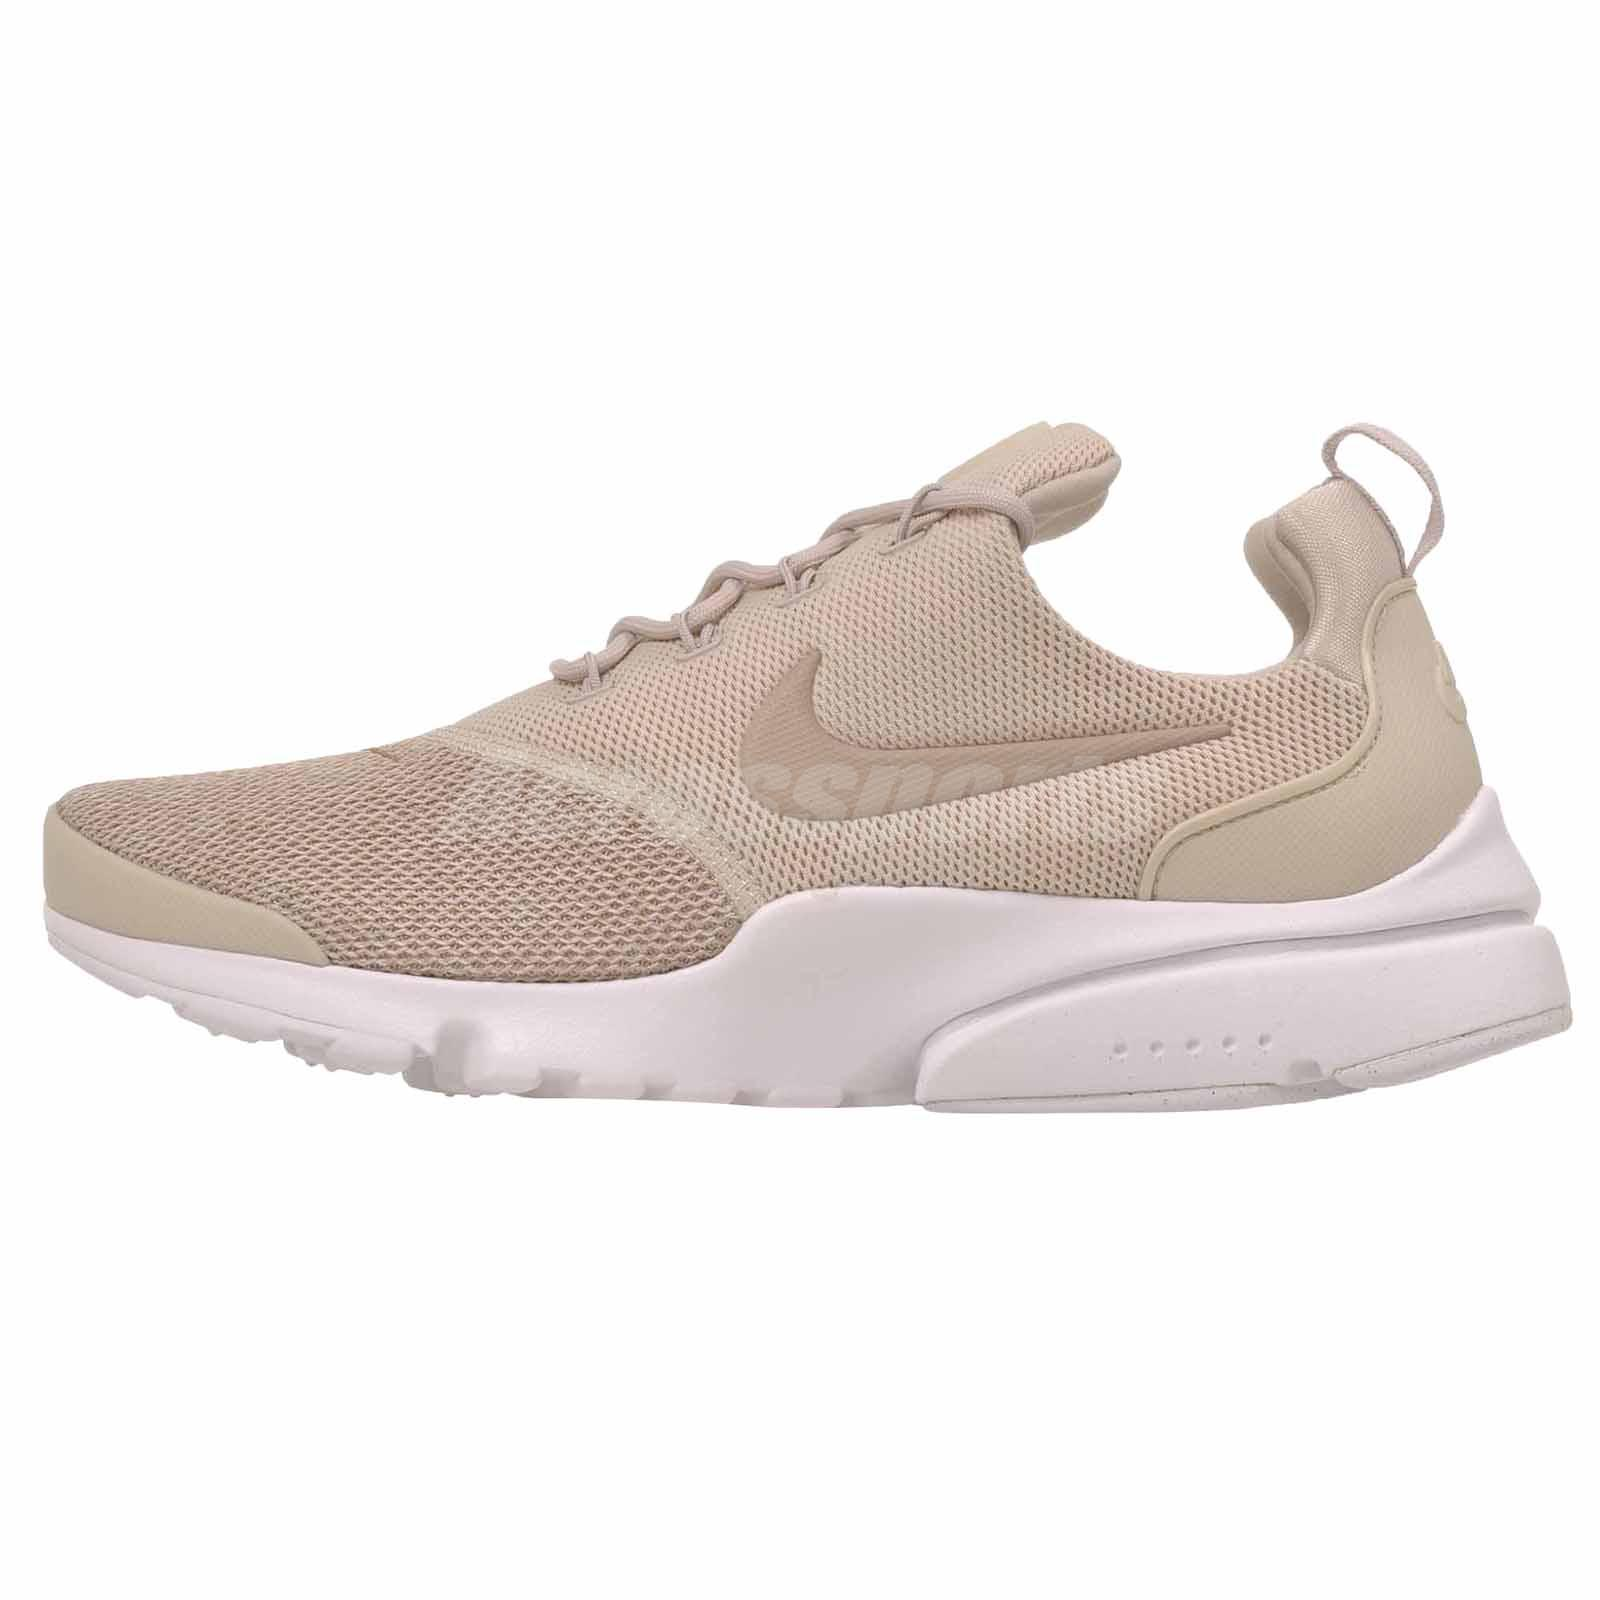 289a55020757d3 Details about Nike Wmns Nike Presto Fly SE Running Womens Shoes Sand  910570-010